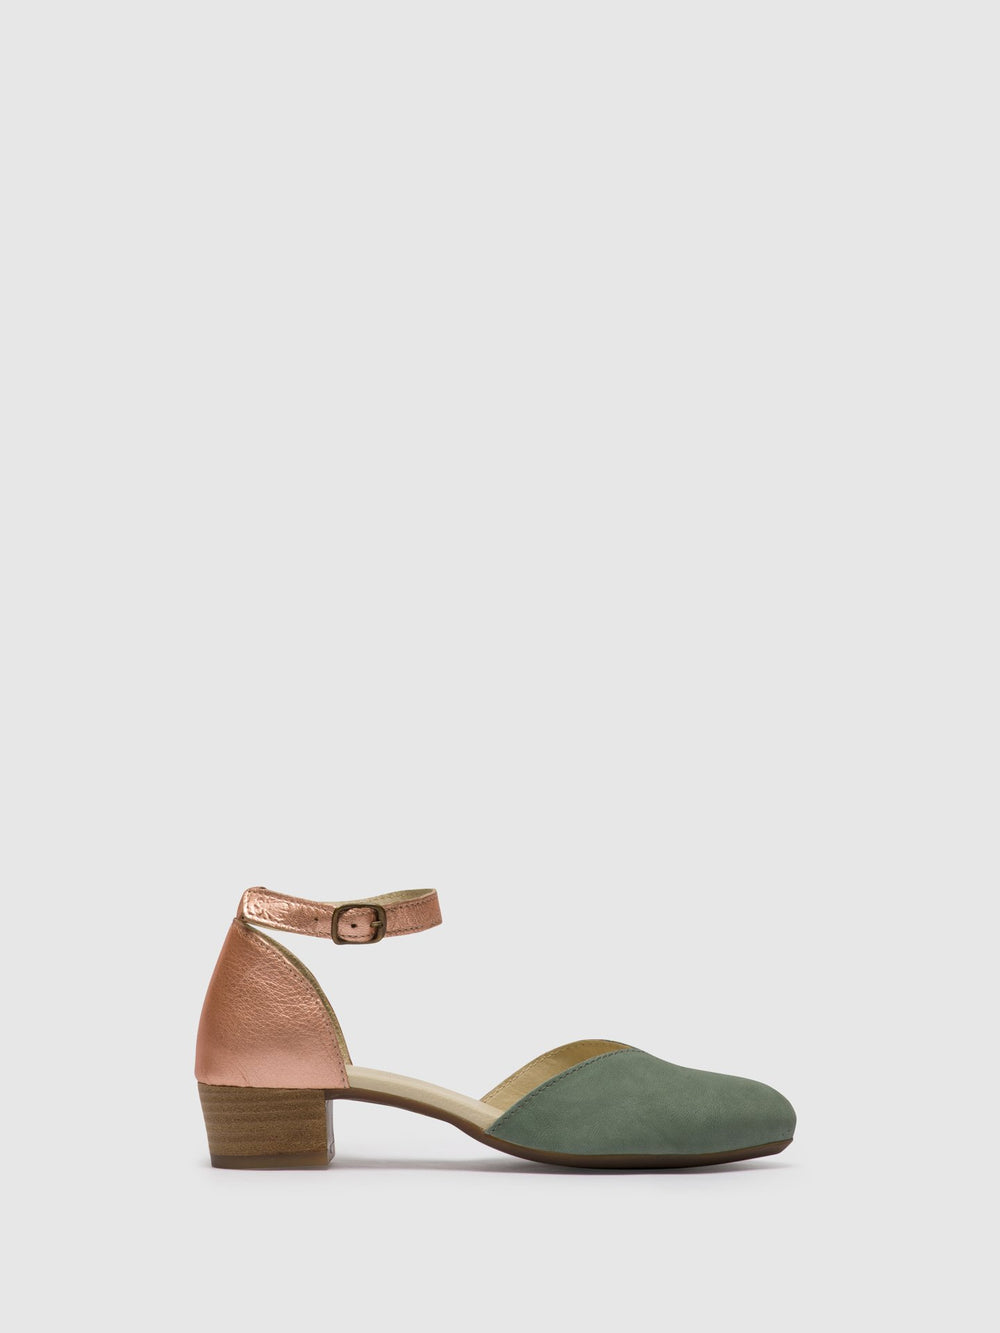 Ankle Strap Sandals LOGI459FLY JADE GREEN/BLUSH GOLD